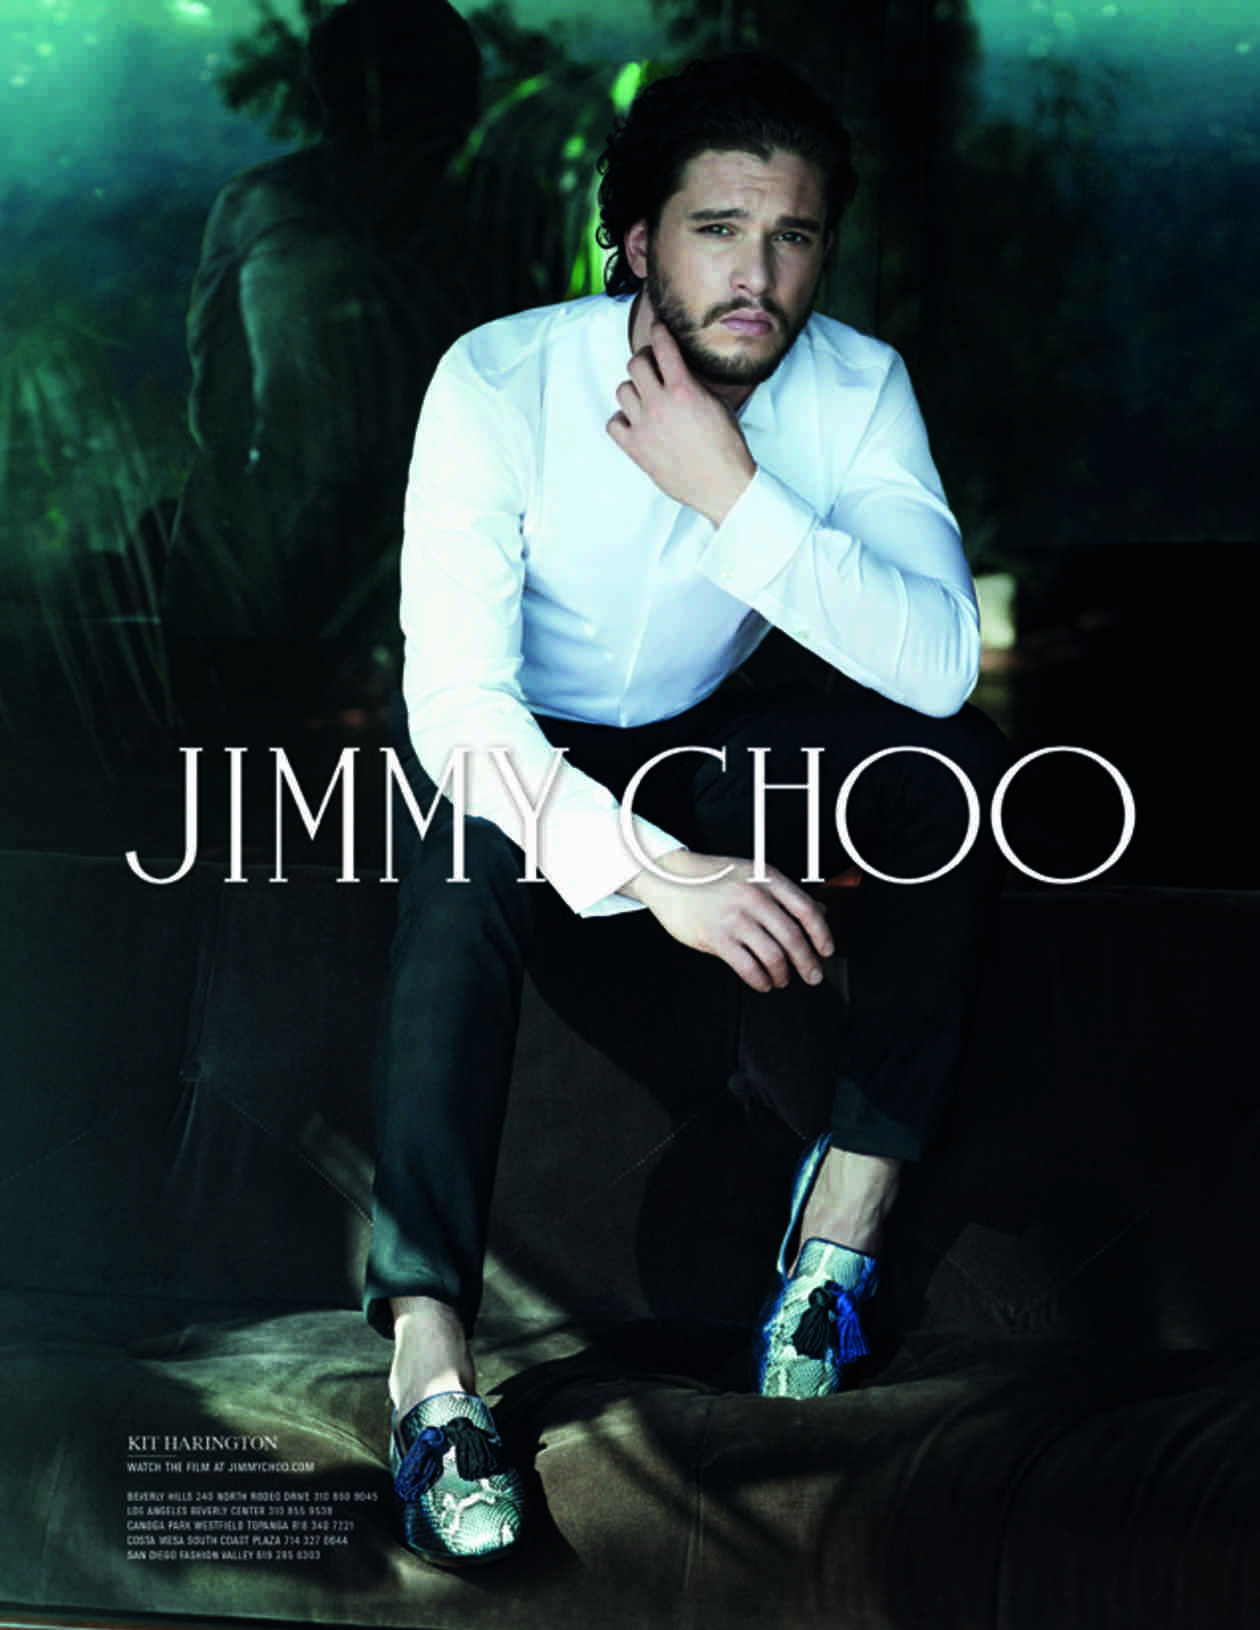 Game of Thrones's Kit Harington Suits Up for Sexy Jimmy Choo Ad Campaign